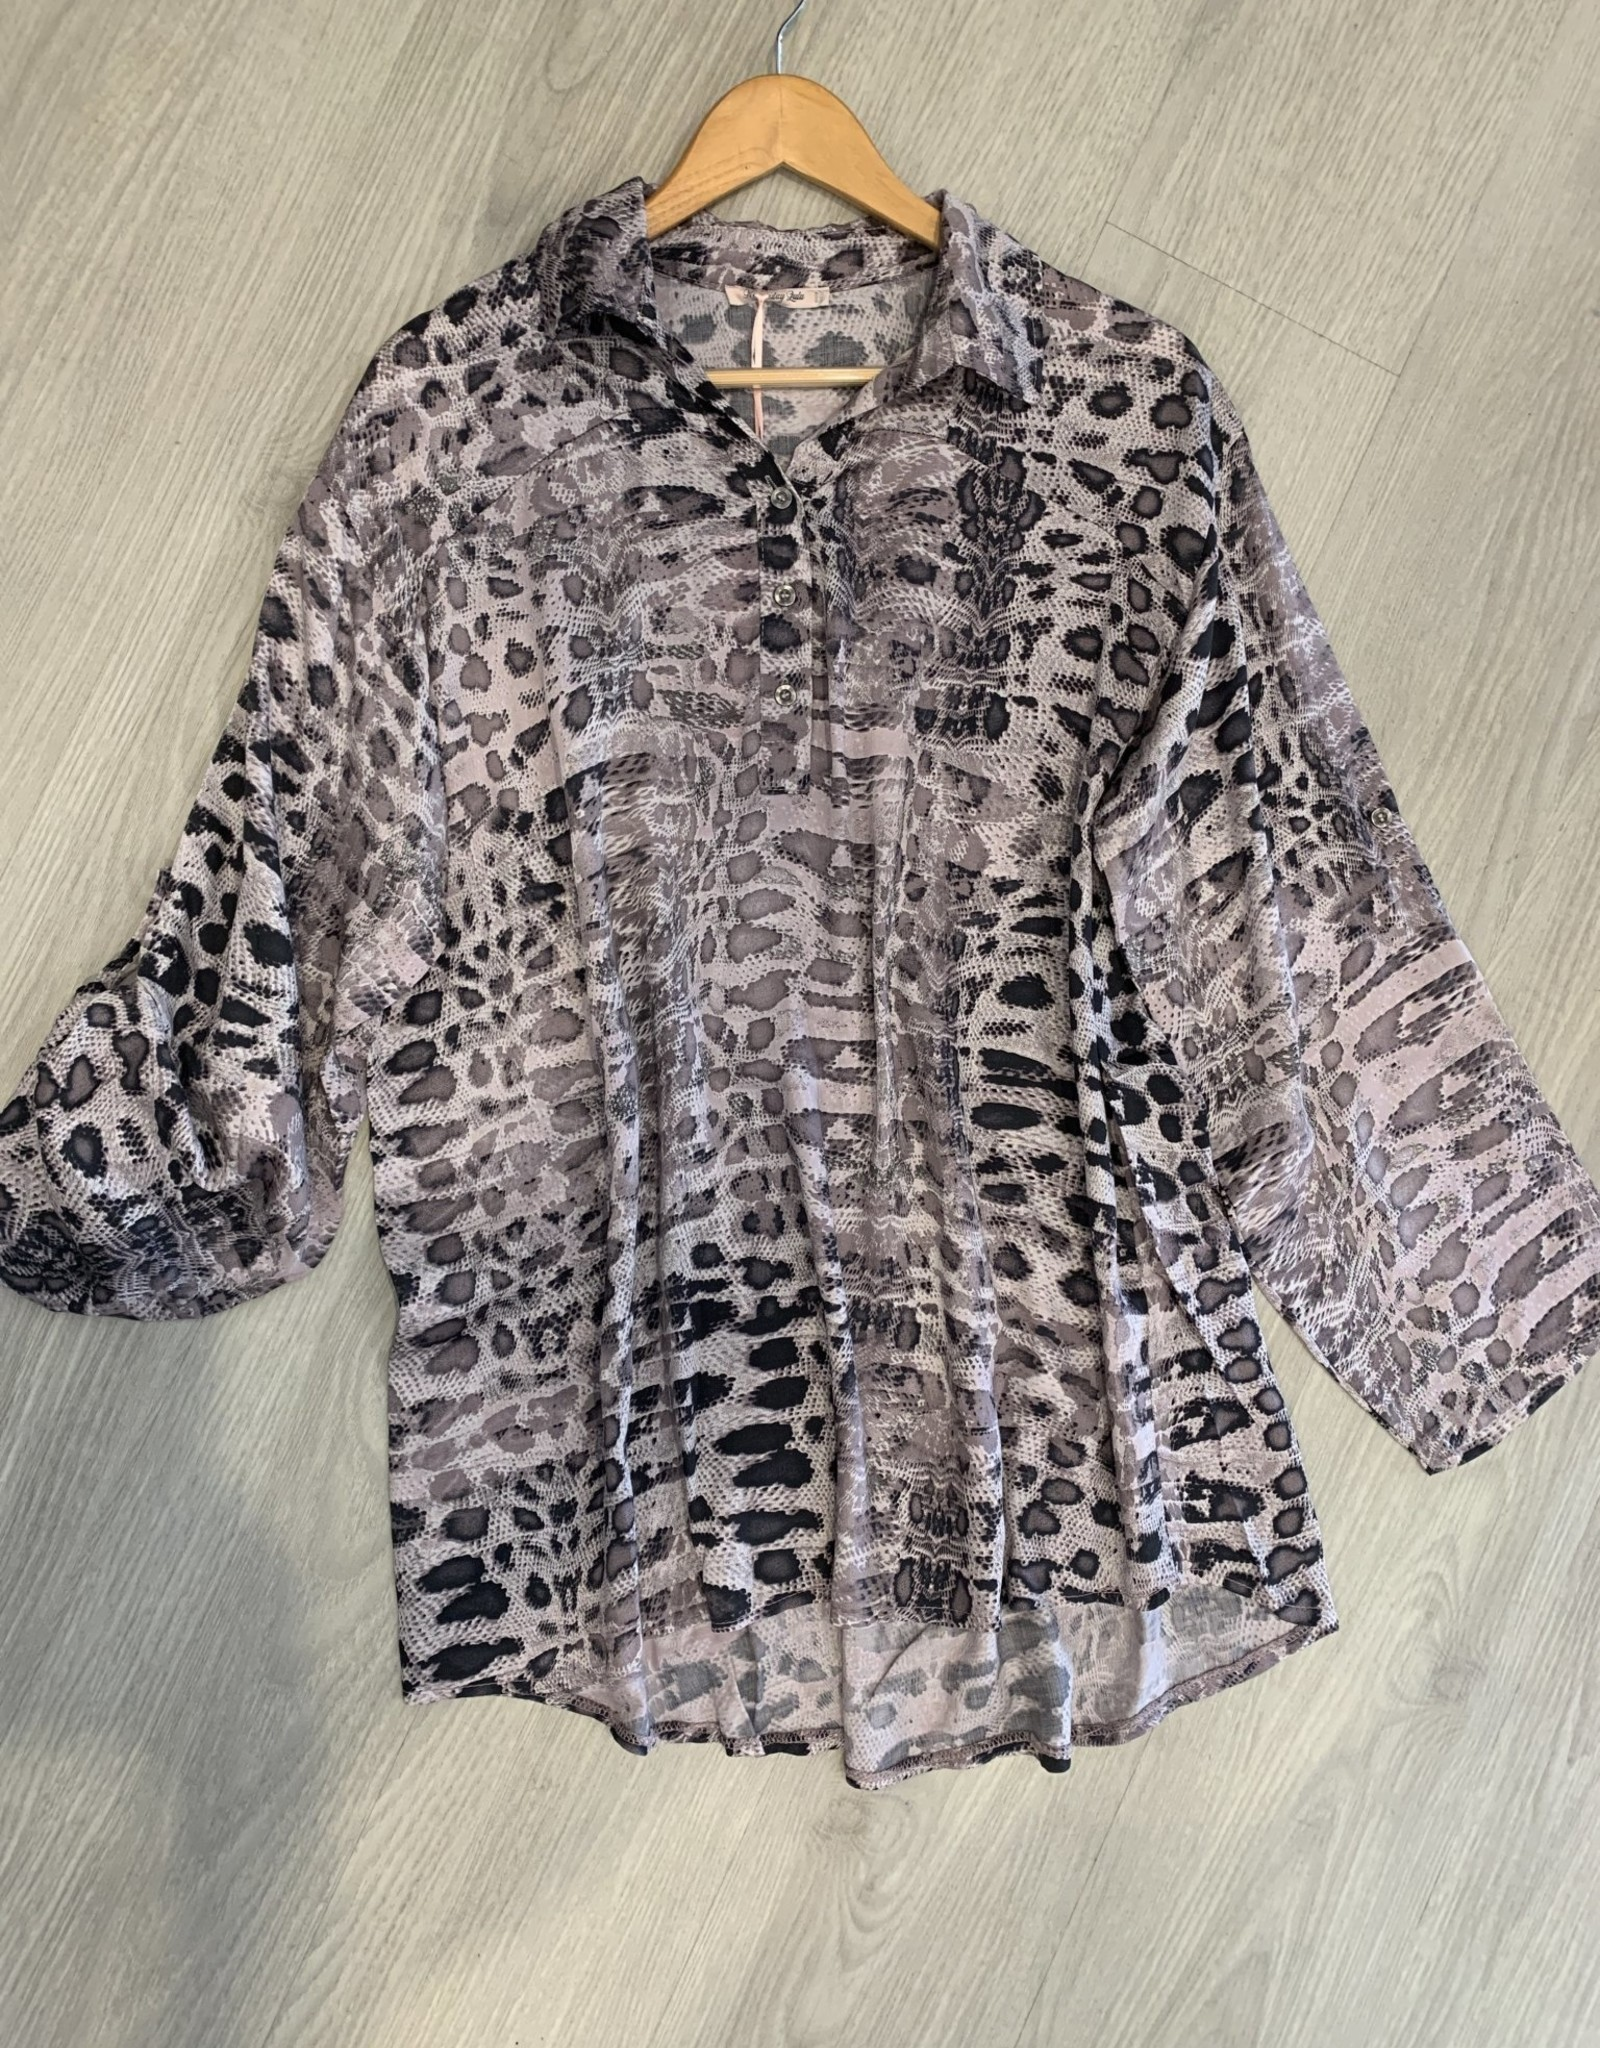 Wednesday Lulu Wednesday Lulu Blush Leopard Print Shirt